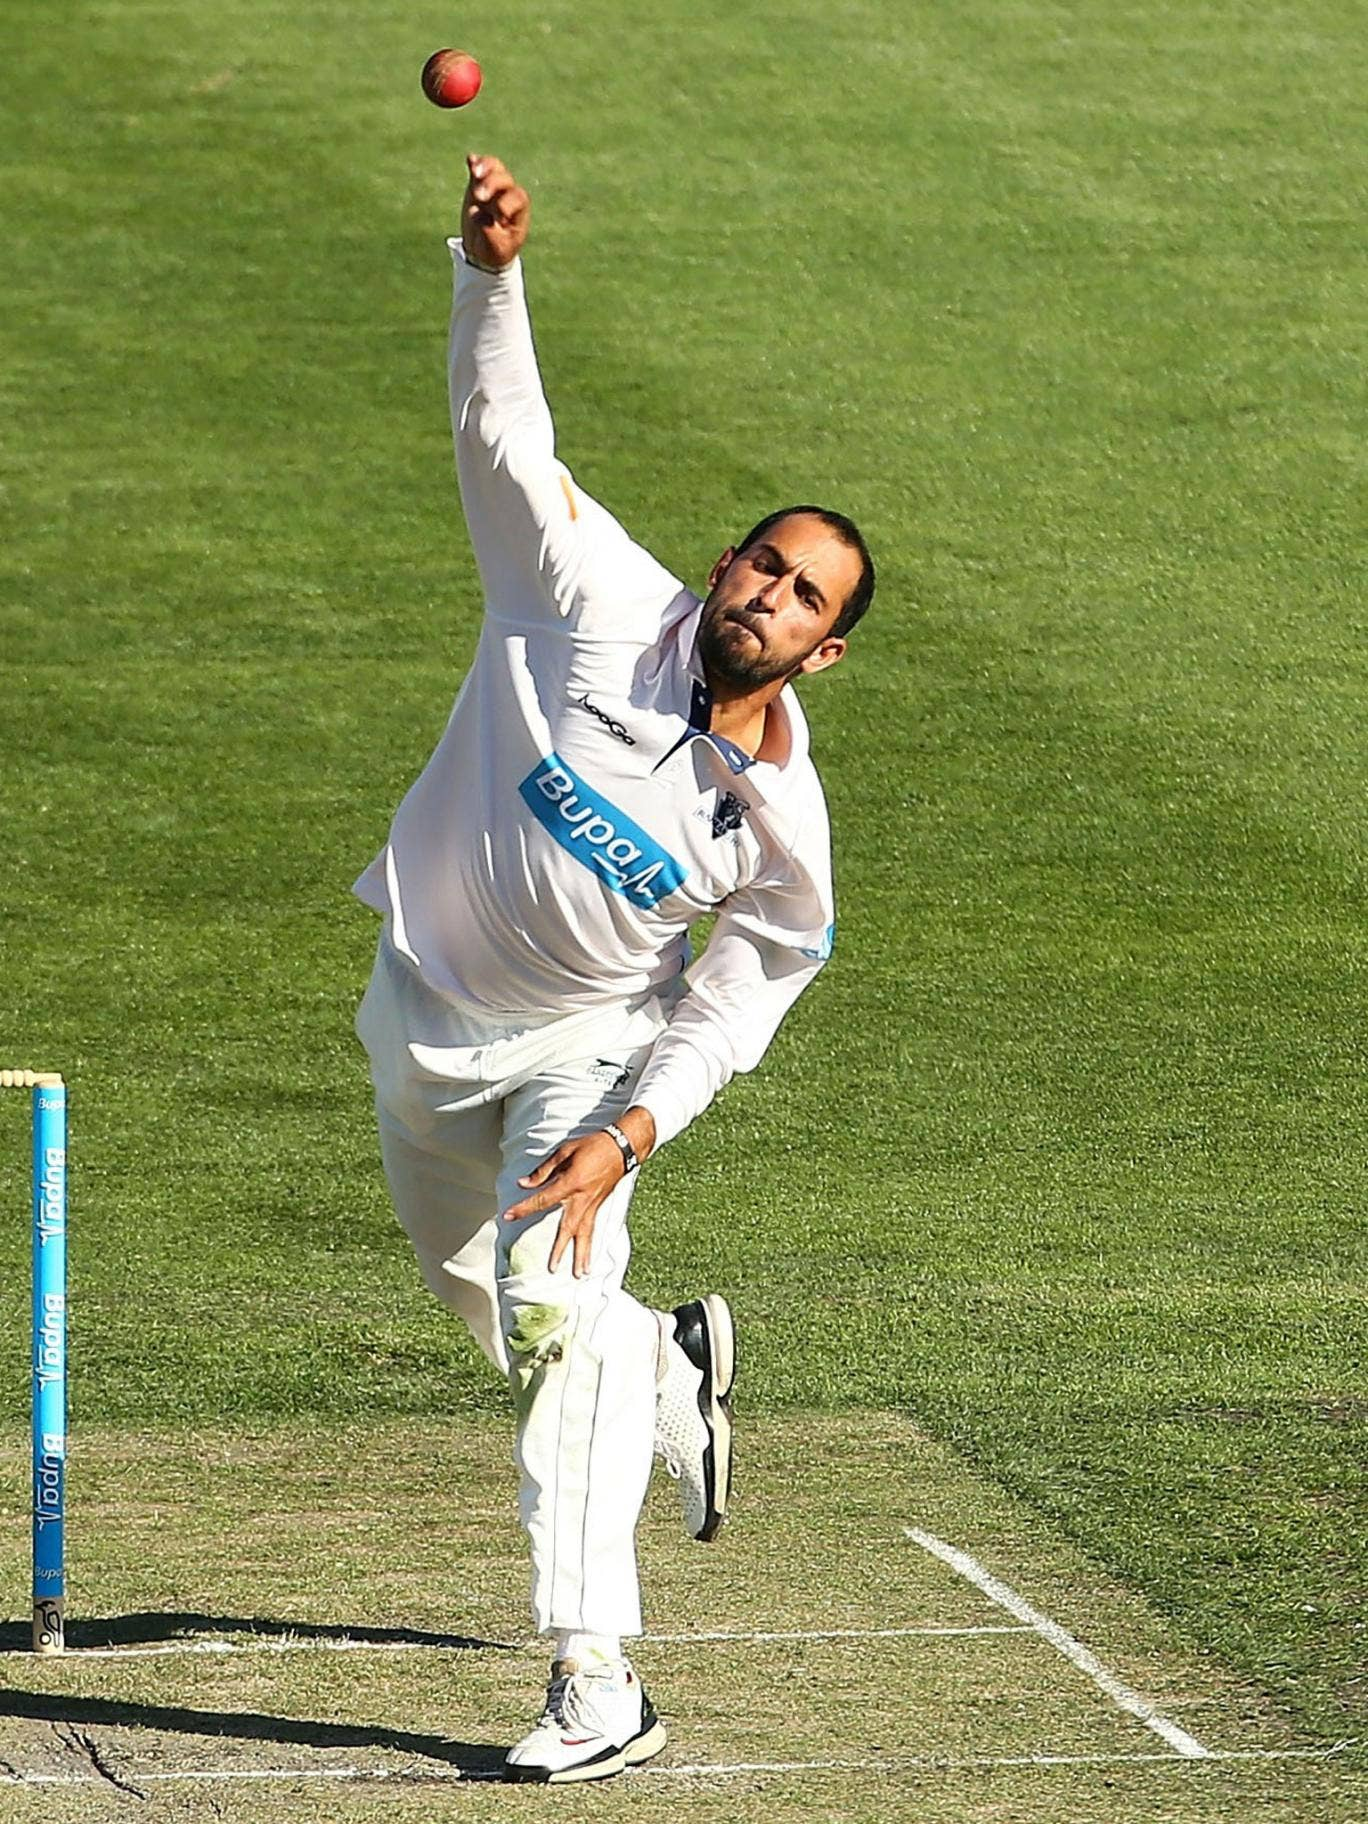 Fawad Ahmed: 'I'm happy in Australia. I'm looking forward. Now i have a new life and this is a new era'